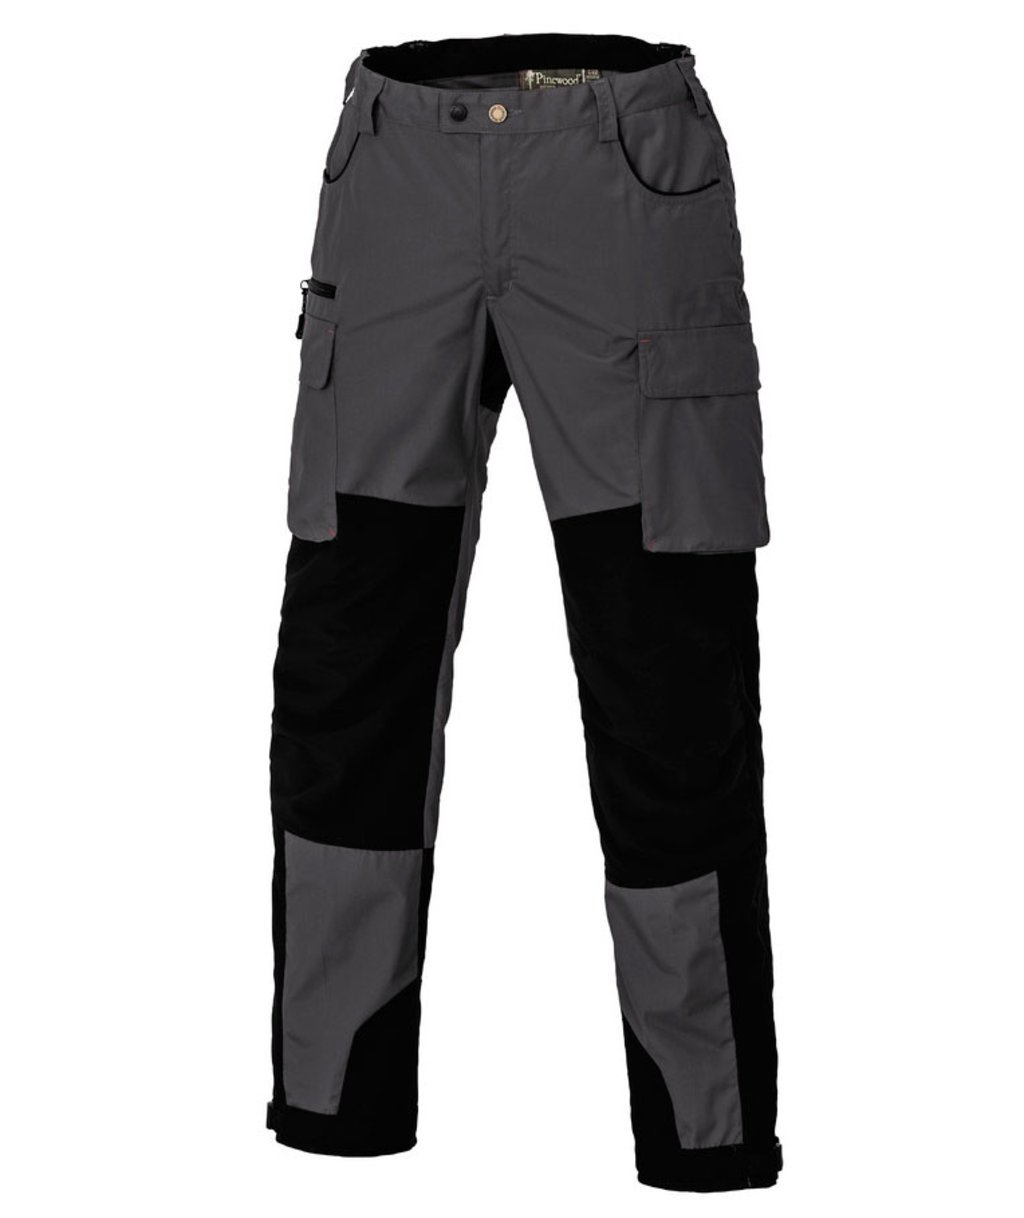 Pinewood Dog Sports Extreme trousers, Dark Grey/Black